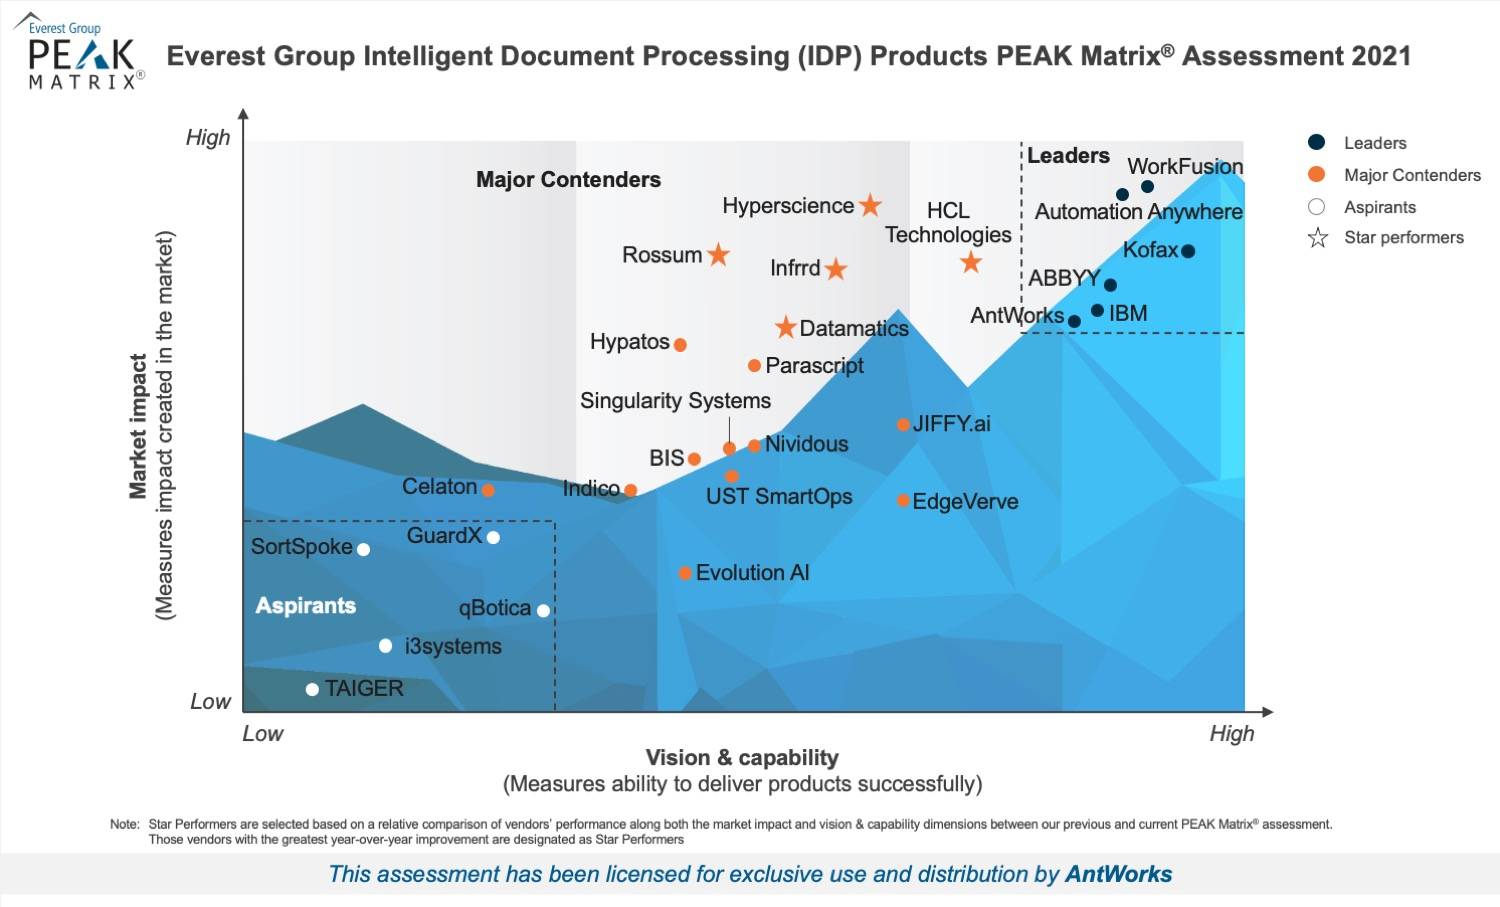 AntWorks named a Leader in Everest Group's IDP Products PEAK Matrix® 2021